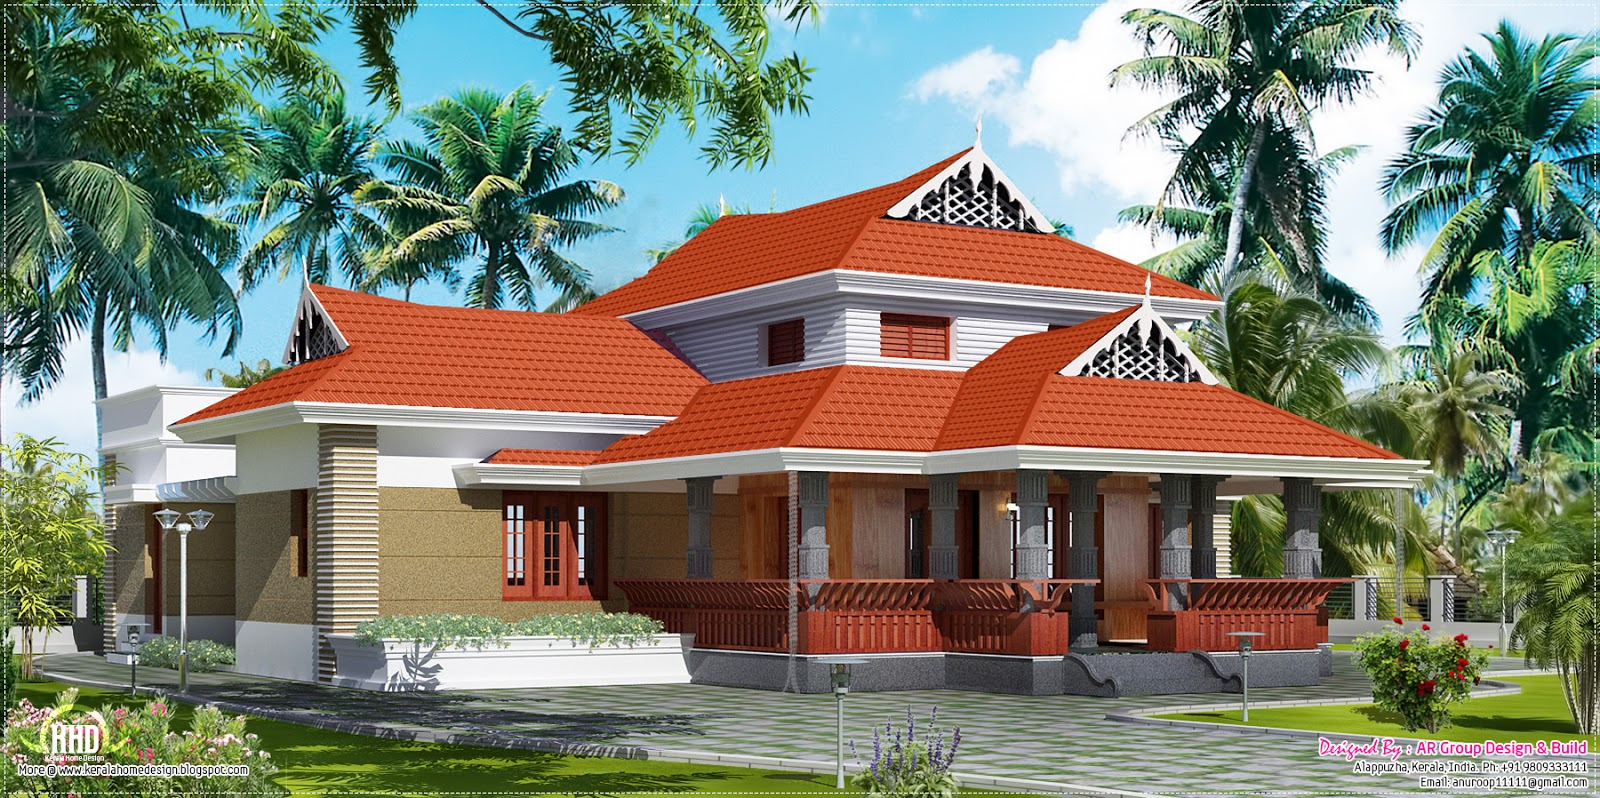 Modern February 2013 Kerala Home Design And Floor Plans, Kerala Traditional with regard to Inspirational Kerala Traditional House Plans With Photos